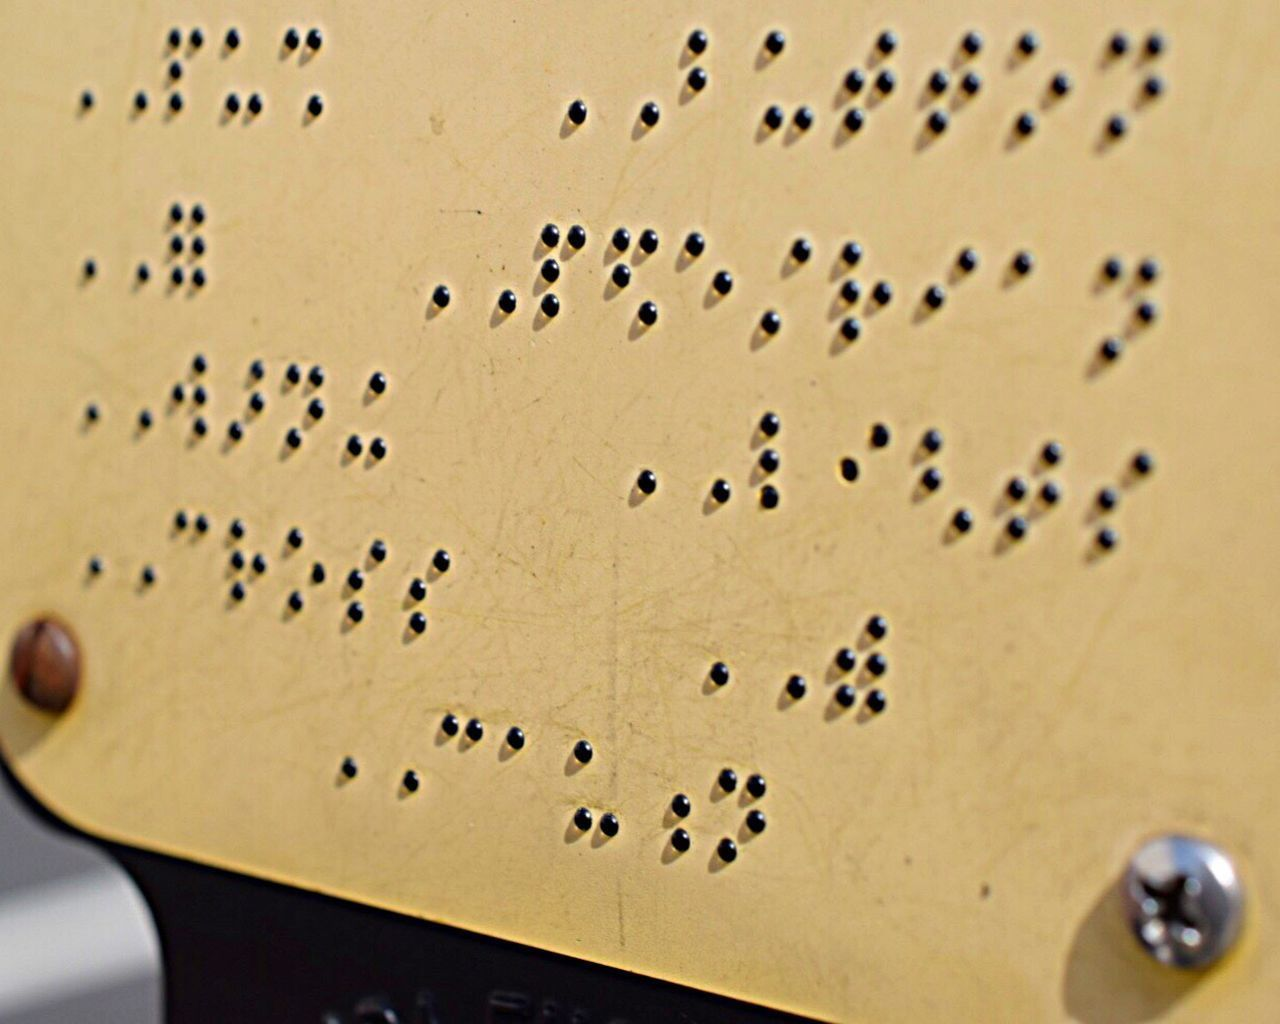 Buttons off the face ~ while crossing an intersection I noticed the raised dots cast a shadow and that a few dots are missing. I wonder if that spells something different. Close-up No People Braille Sign Crosswalk Sign Pedestrian Crossing Day